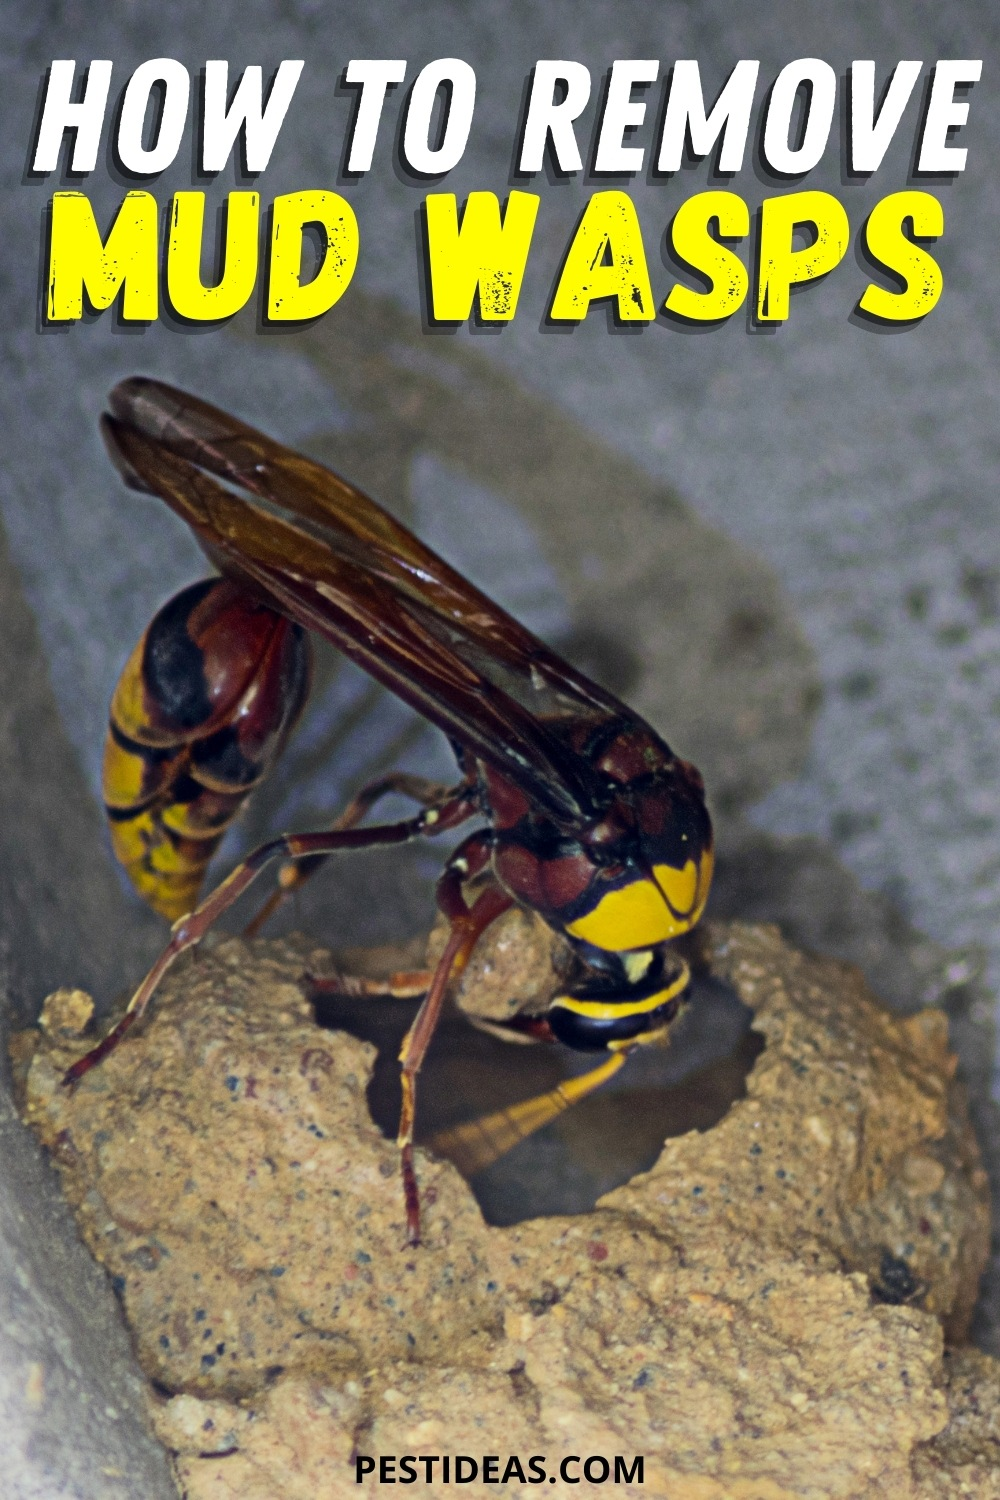 How to remove mud wasps